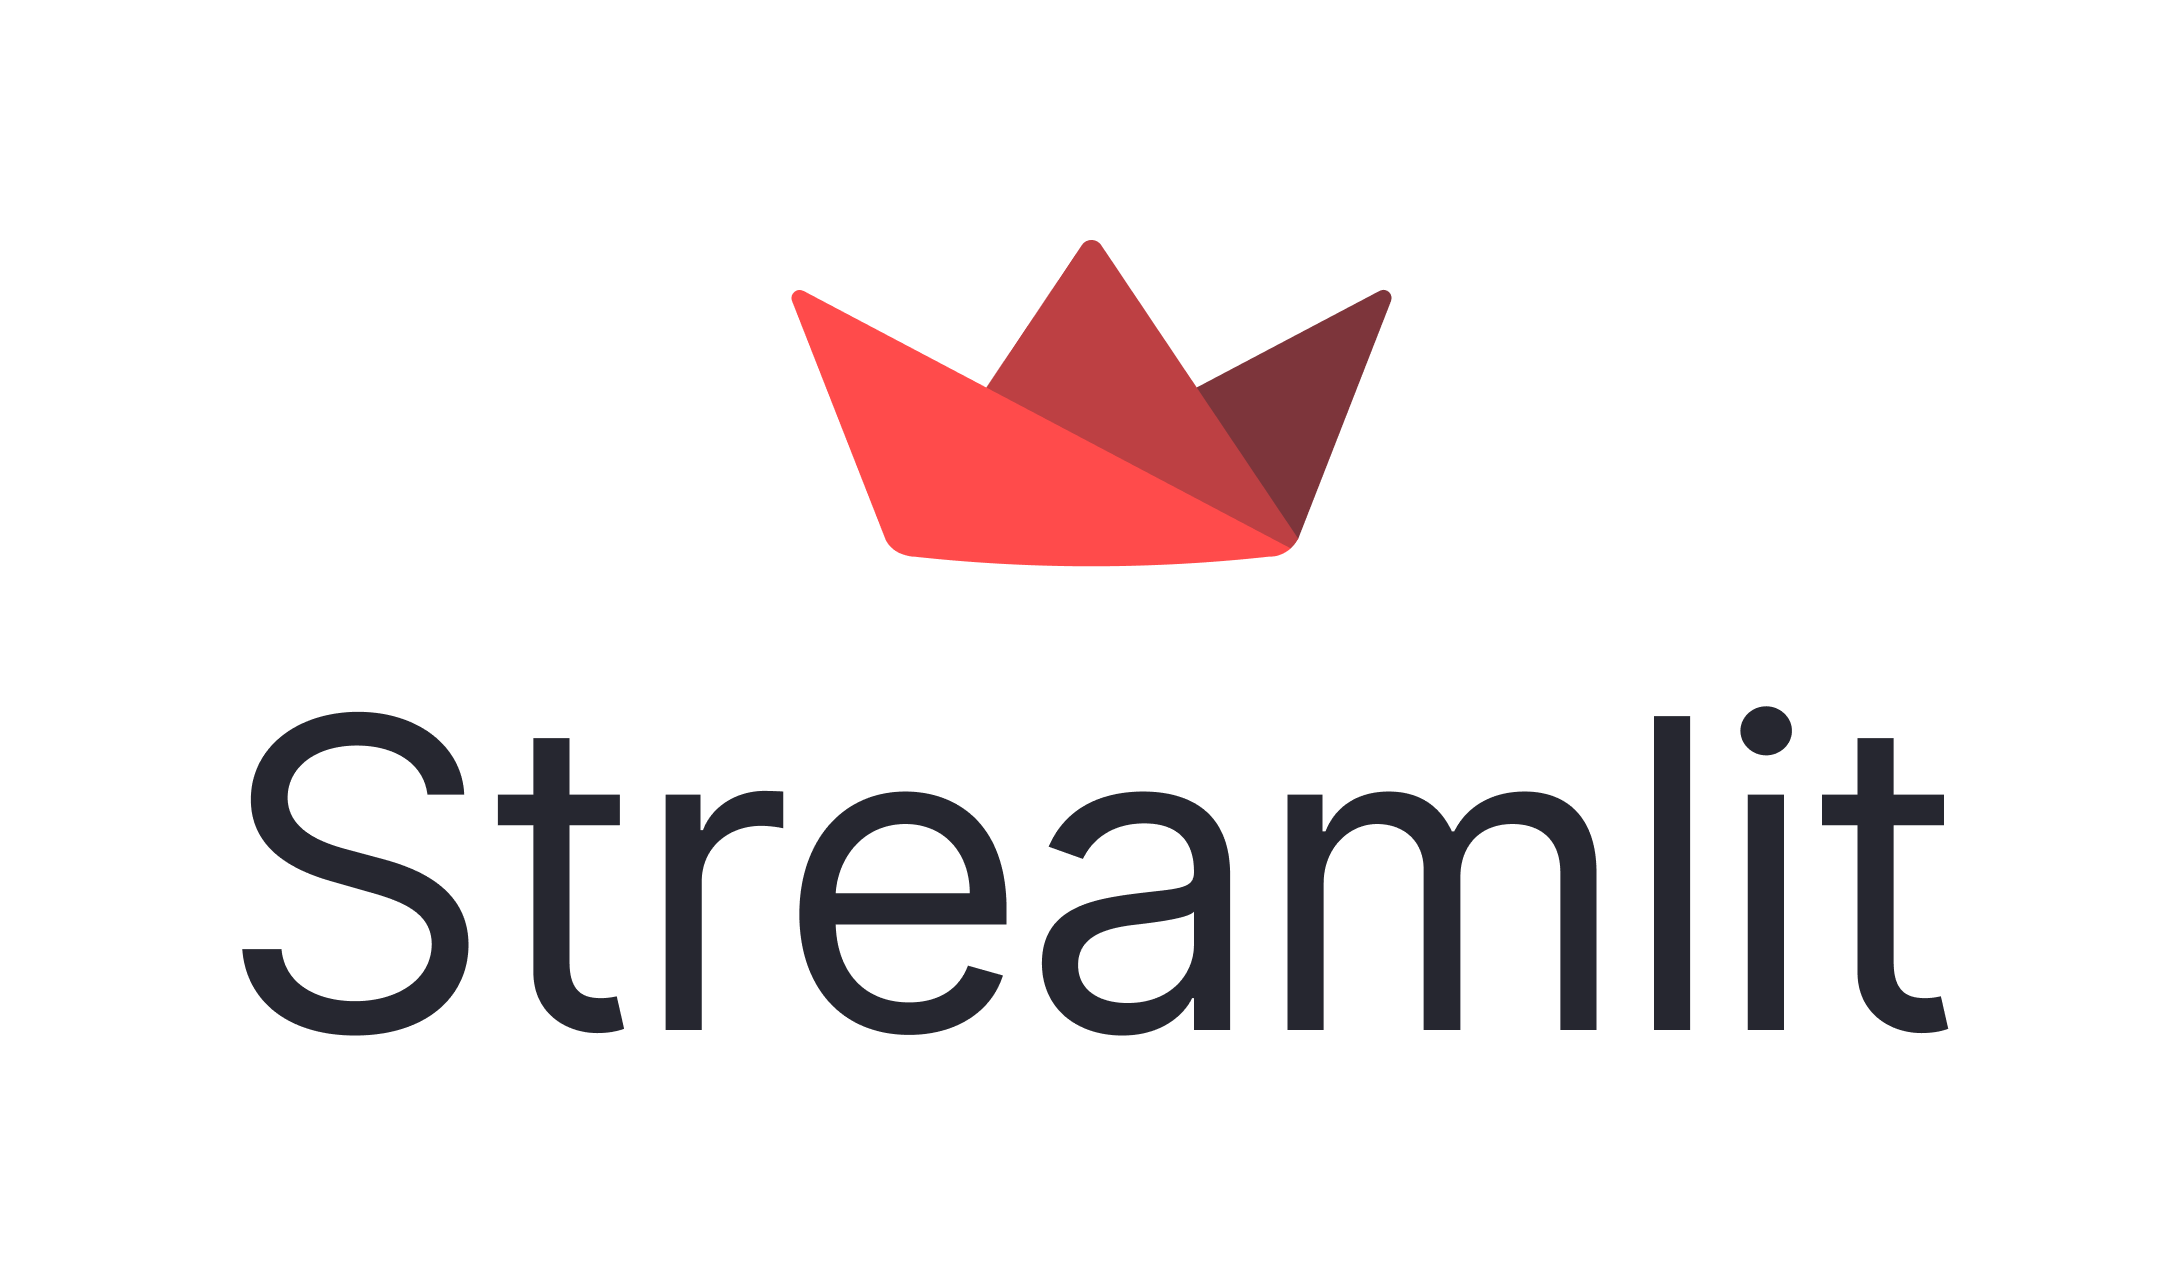 Streamlit logo on light background